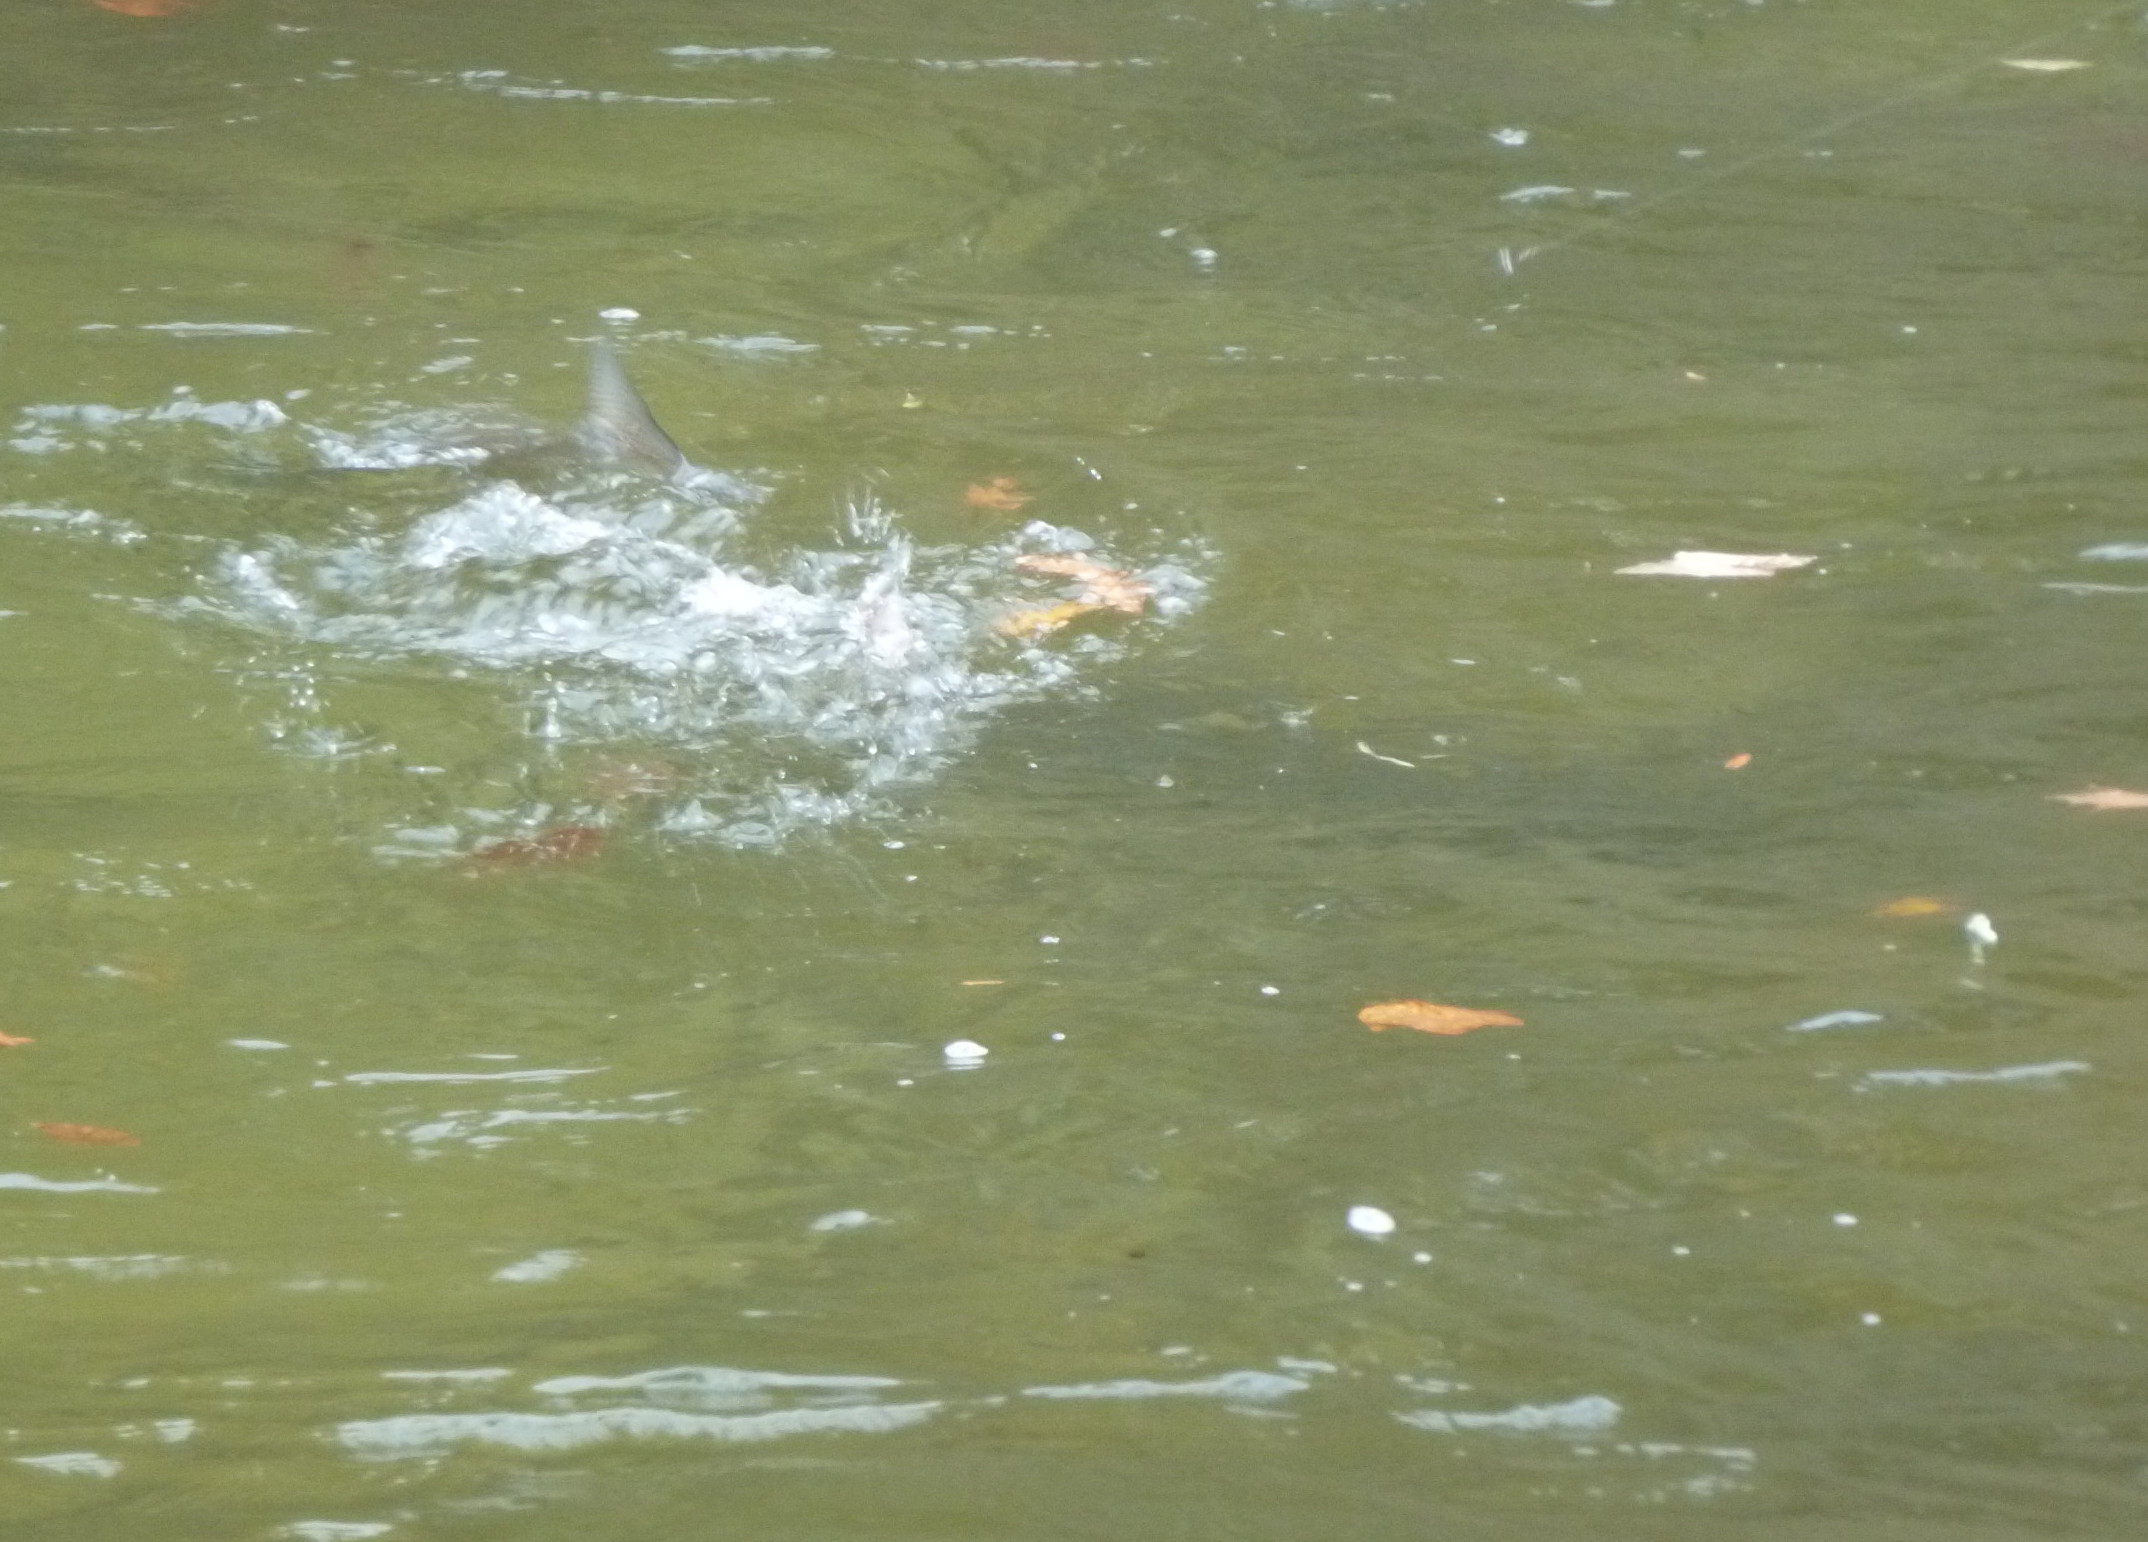 Great shot of a steelhead throwing water and flicking it's tail!